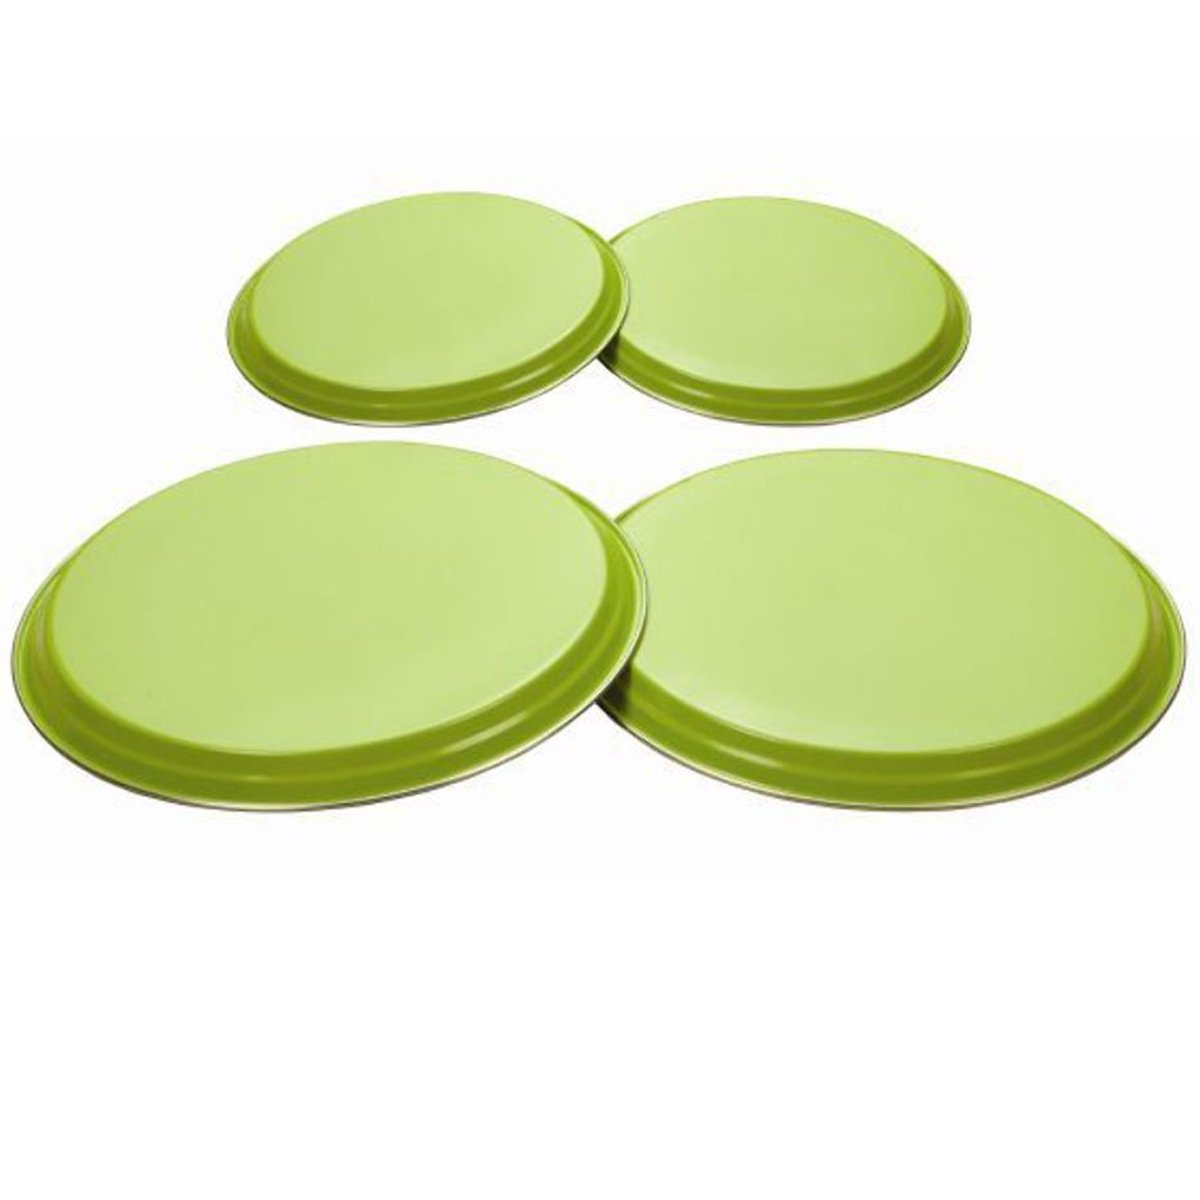 4pcs Hob Covers Reusable Stainless Steel Kitchen Oven Cooker Ring Protector Metal Covers (Lime Green) Party Decor